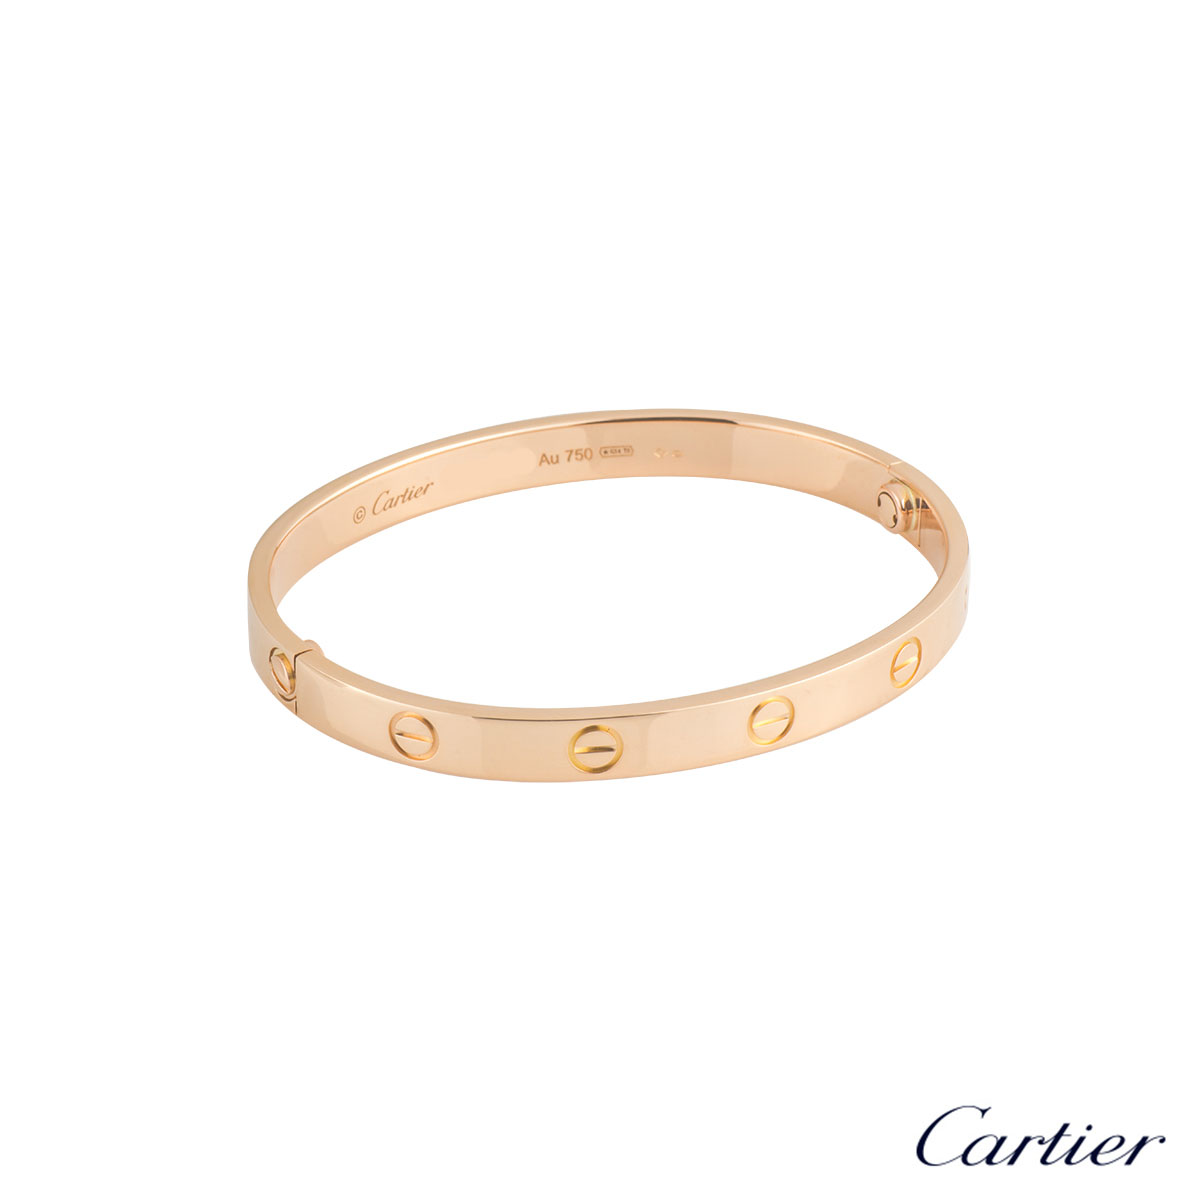 Cartier Rose Gold Plain Love Bracelet Size 19 B6035619